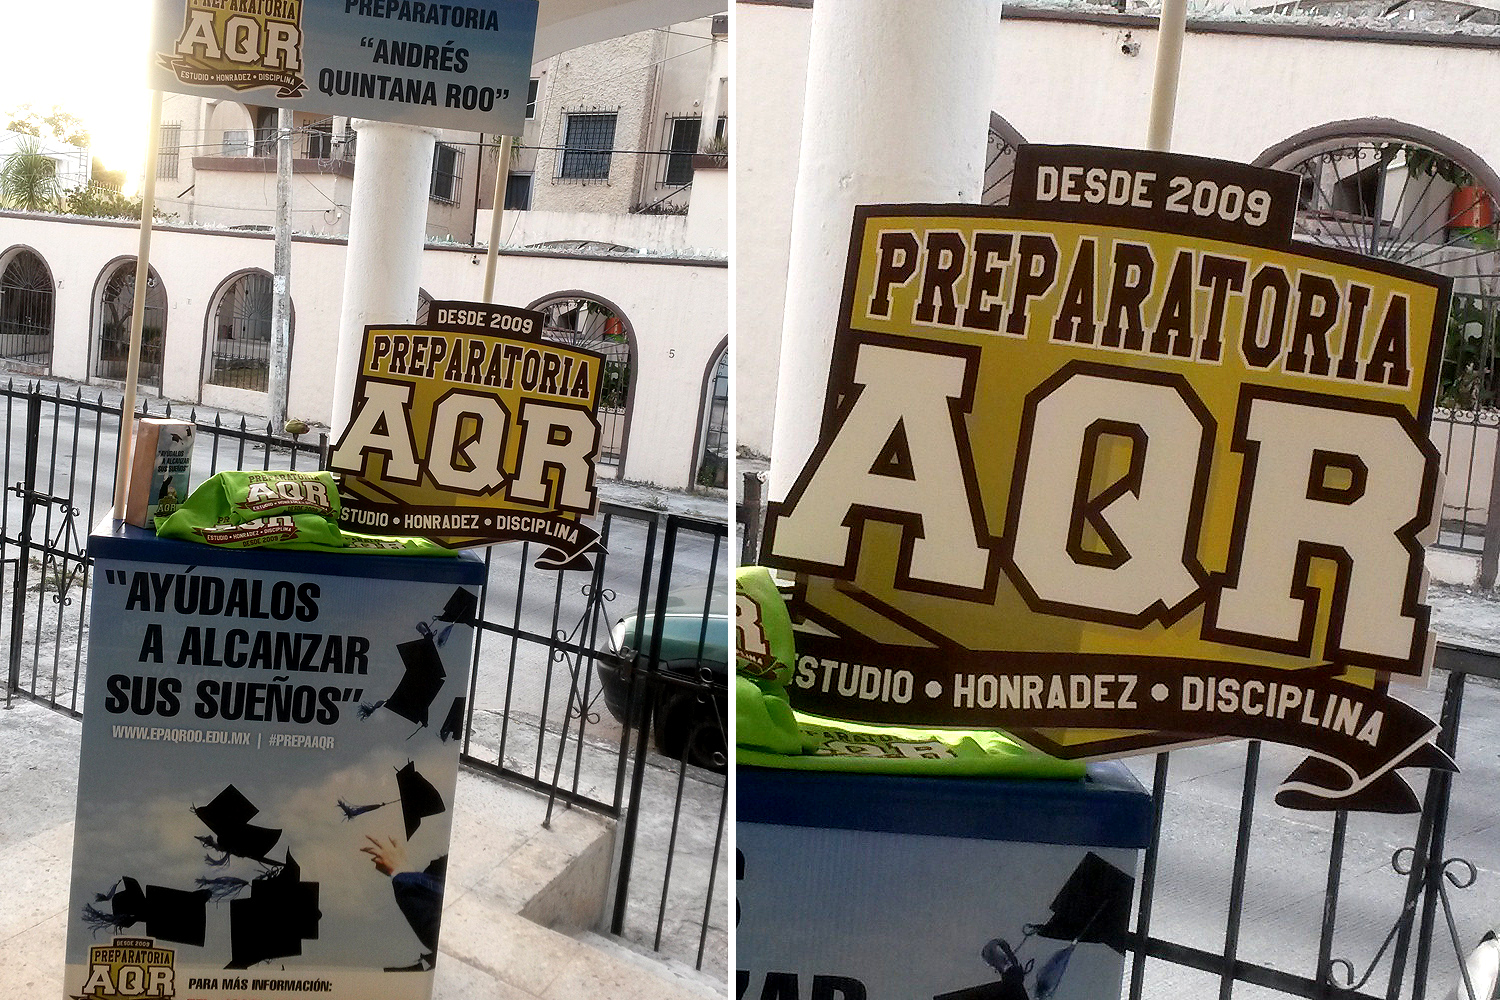 aqr-demo-stand